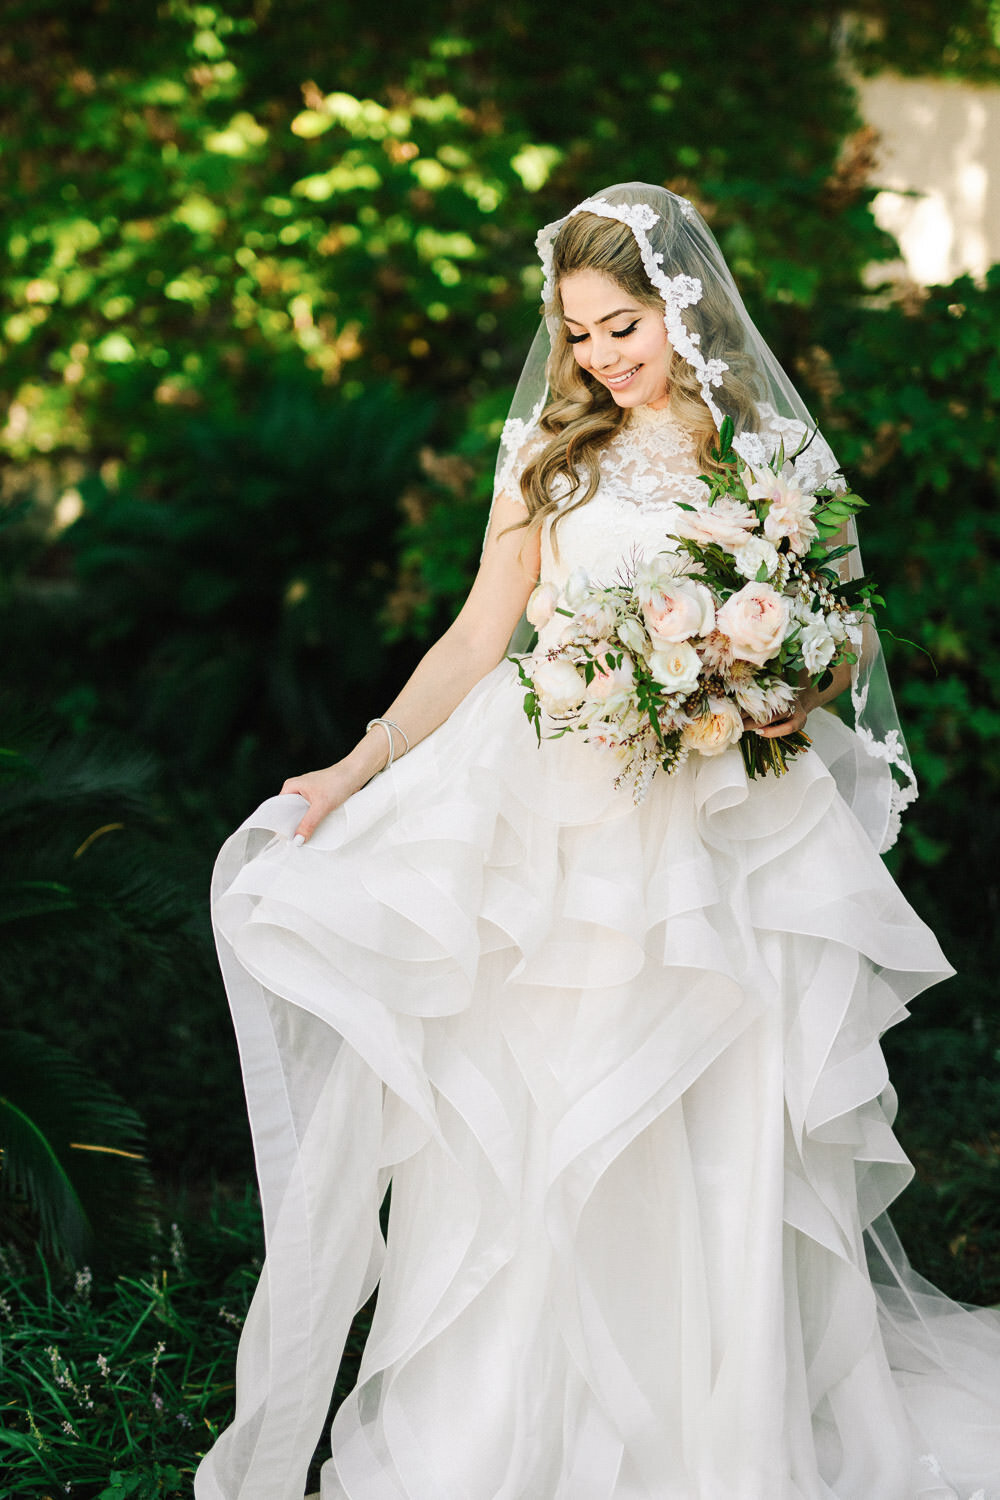 bride in white wedding dress and veil holding bouquet in front of green smiling by Jeff Brummett